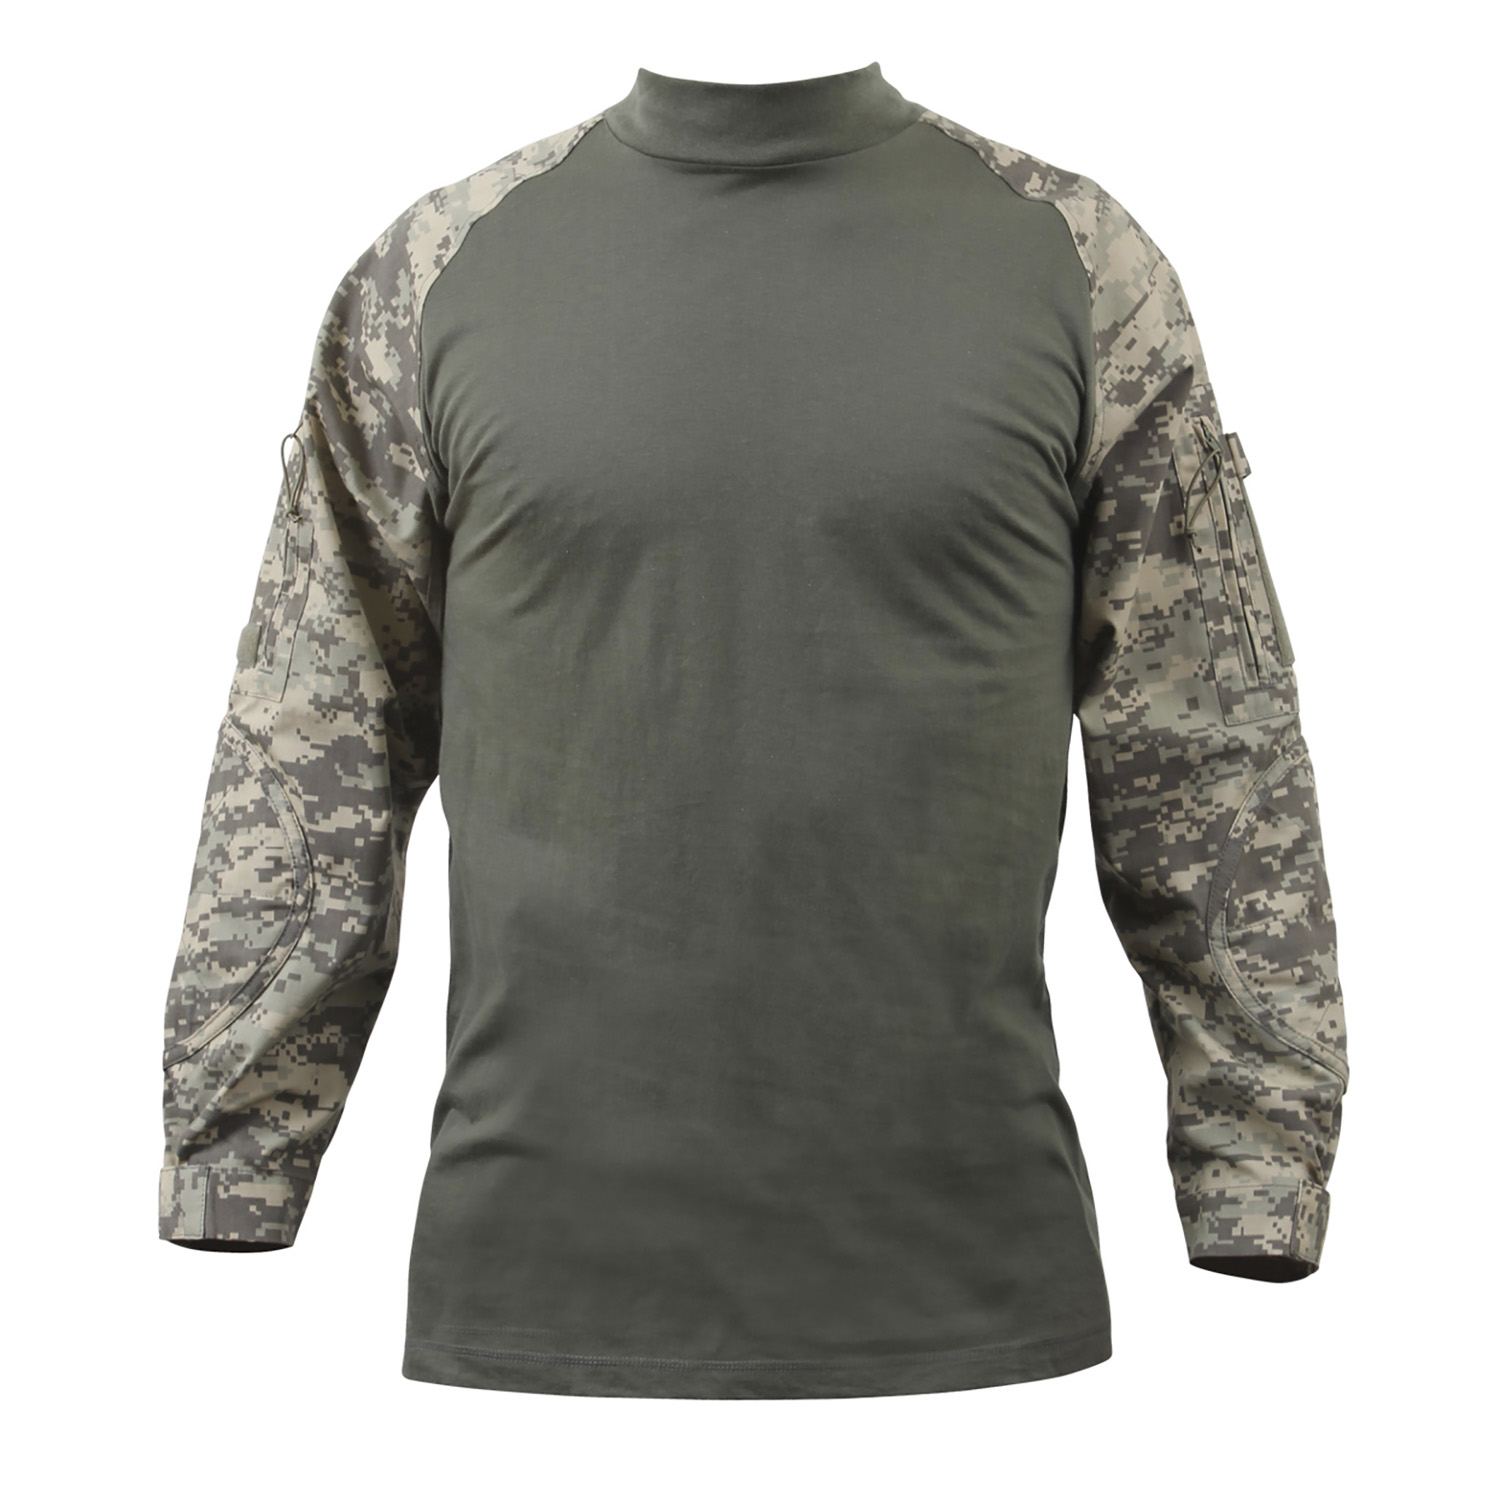 ACU Digital Camo Combat Shirt